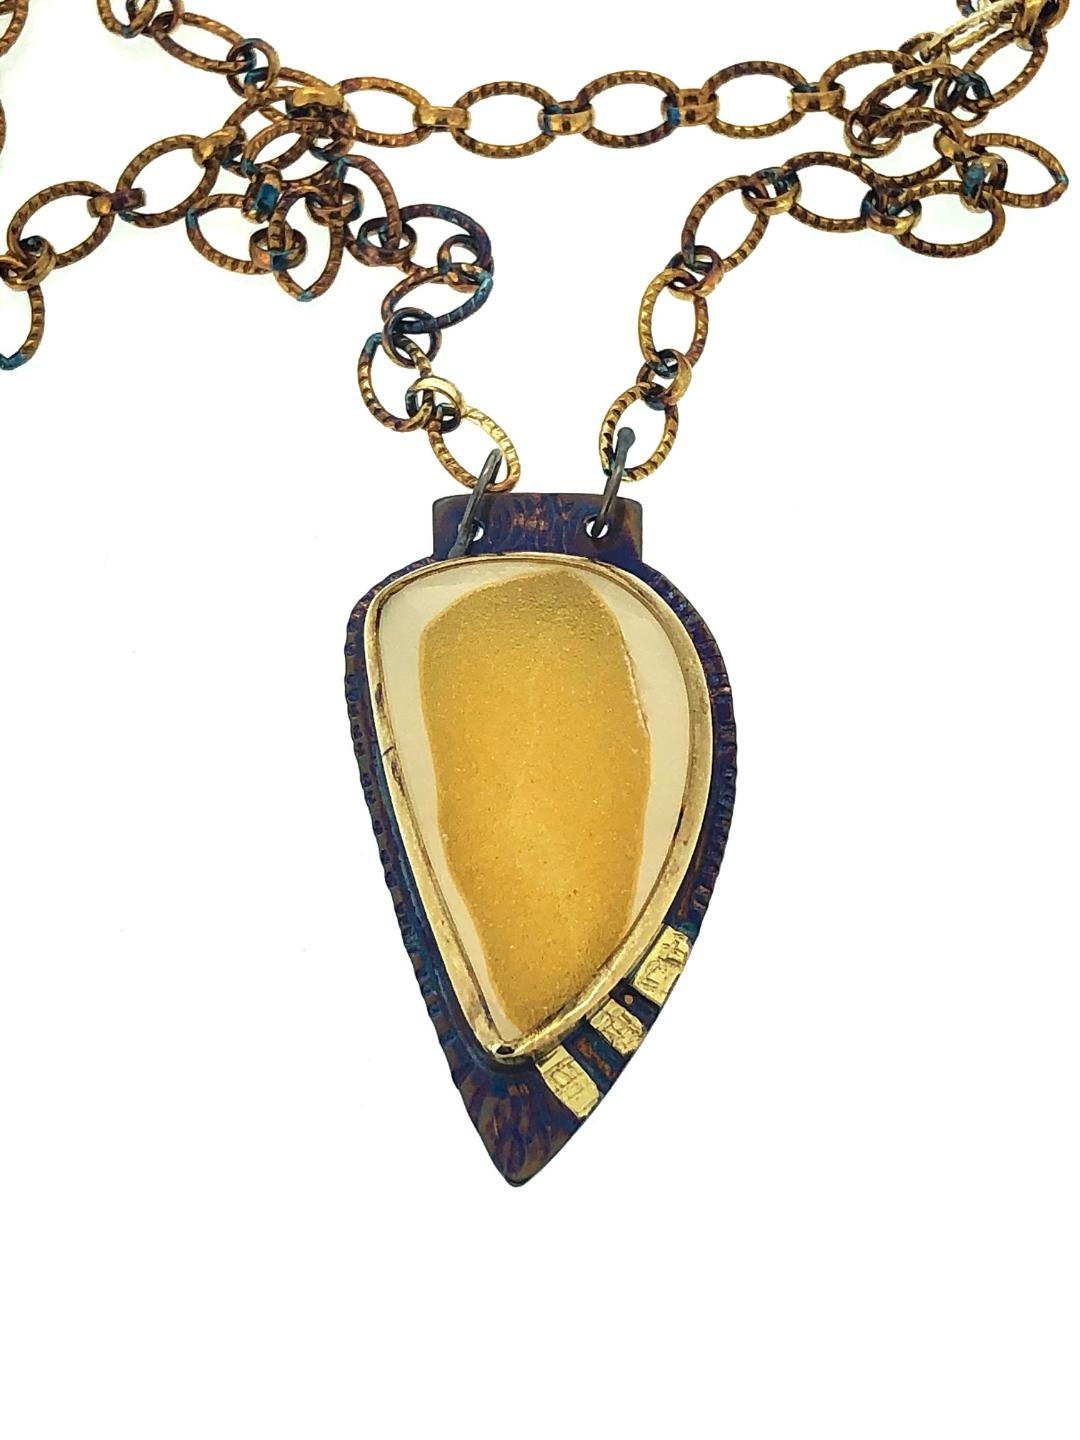 Yellow Necklace in 22k Gold, Natural Druzy from W. Java, Indonesia 23